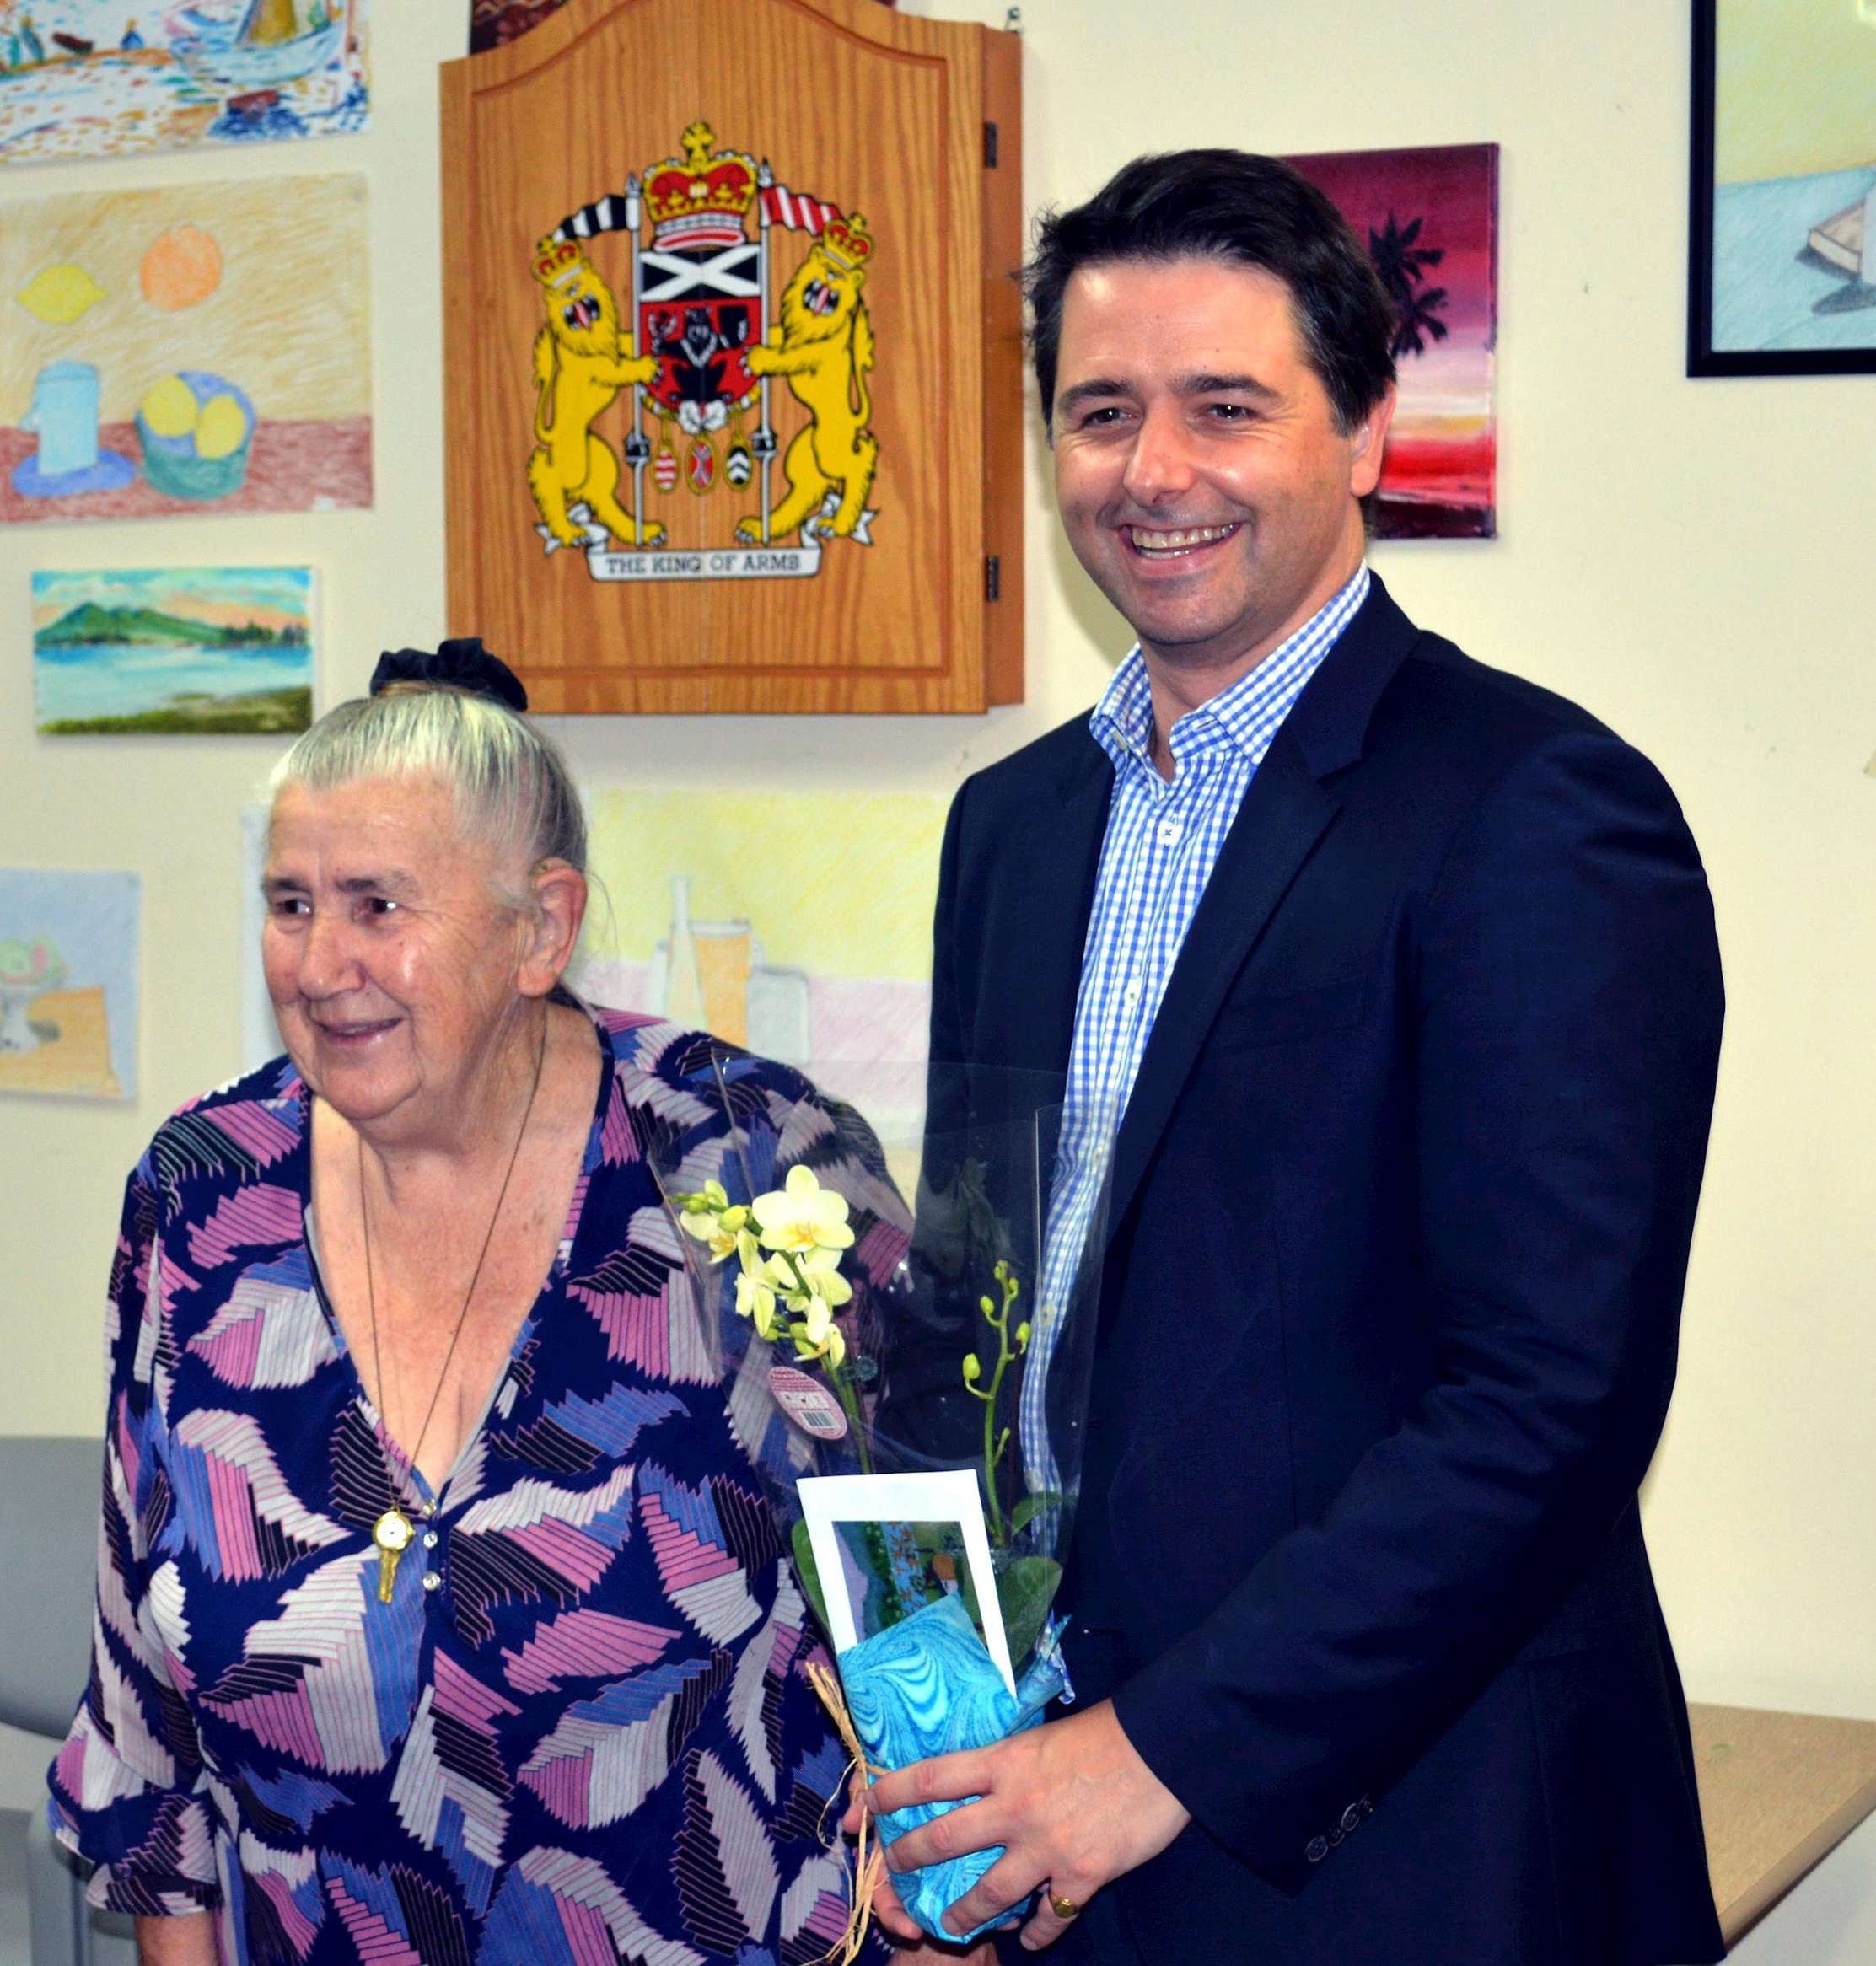 Alastair McEwin disability discrimination commissioner with an old lady